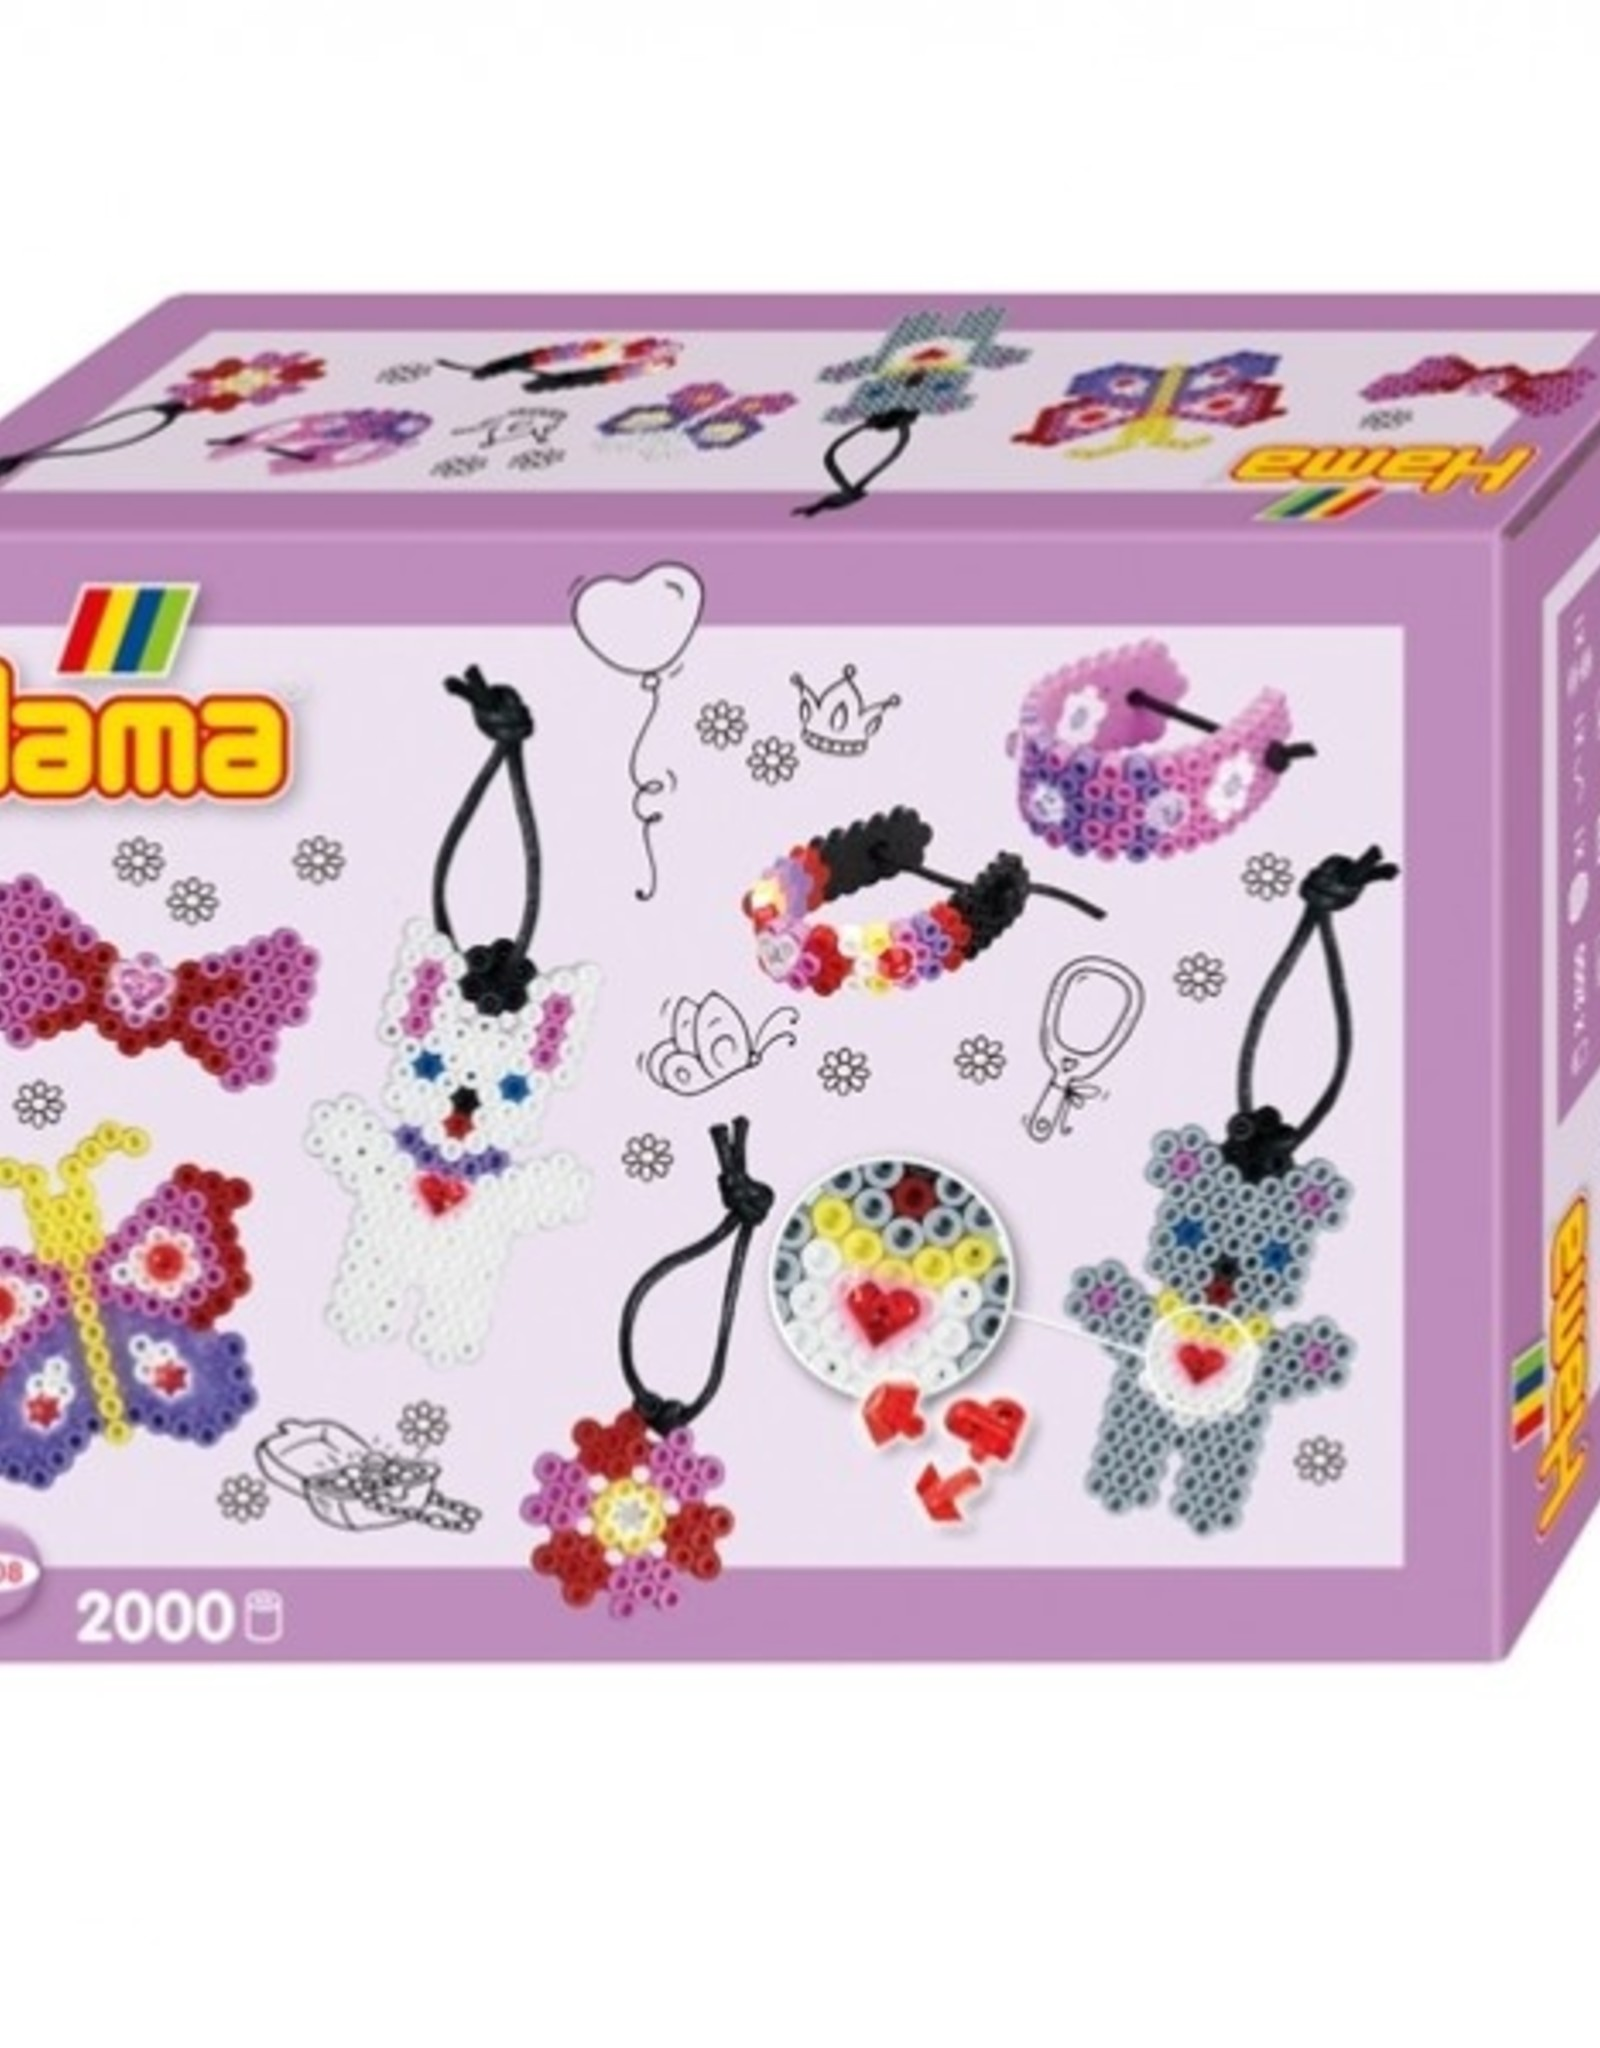 Hama Hama Bead Gift Box - Fashion Accessories